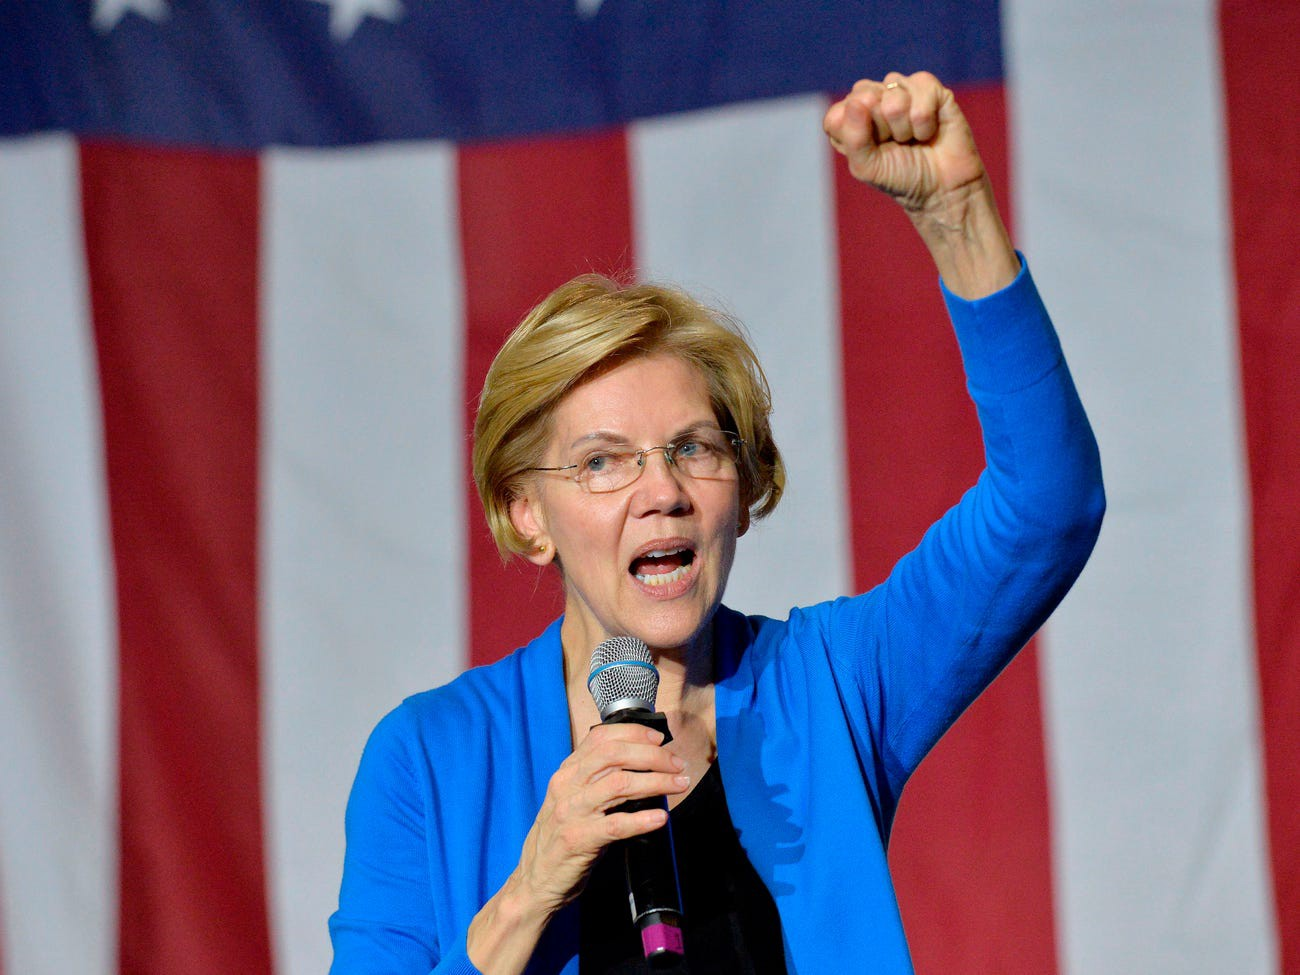 Senator Elizabeth Warren speaks at Exeter High School in Exeter, New Hampshire during a campaign stop town hall in November 11, 2019.